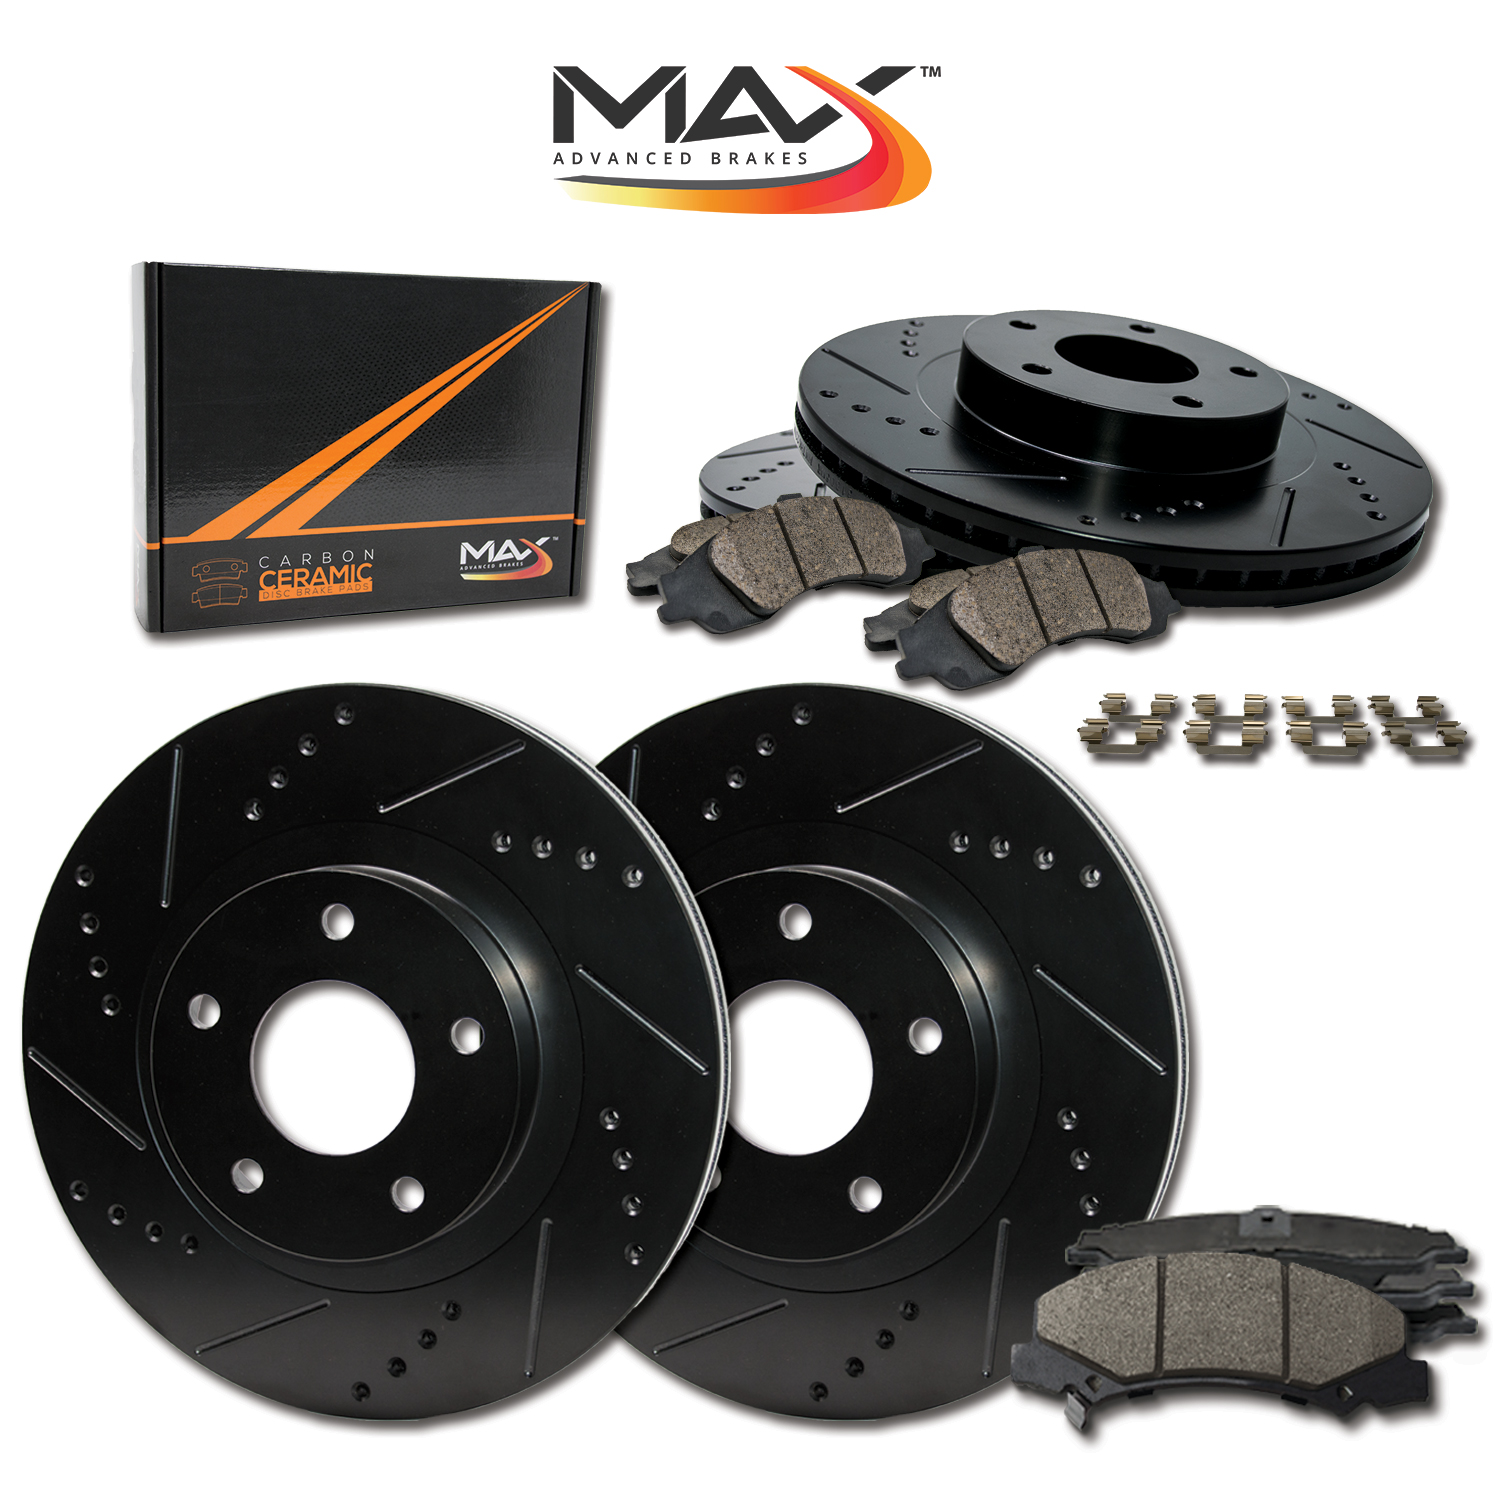 FRONT-REAR-BLACK-Slotted-Drilled-Rotors-with-Ceramic-Pads-amp-Hardware-Kit thumbnail 1